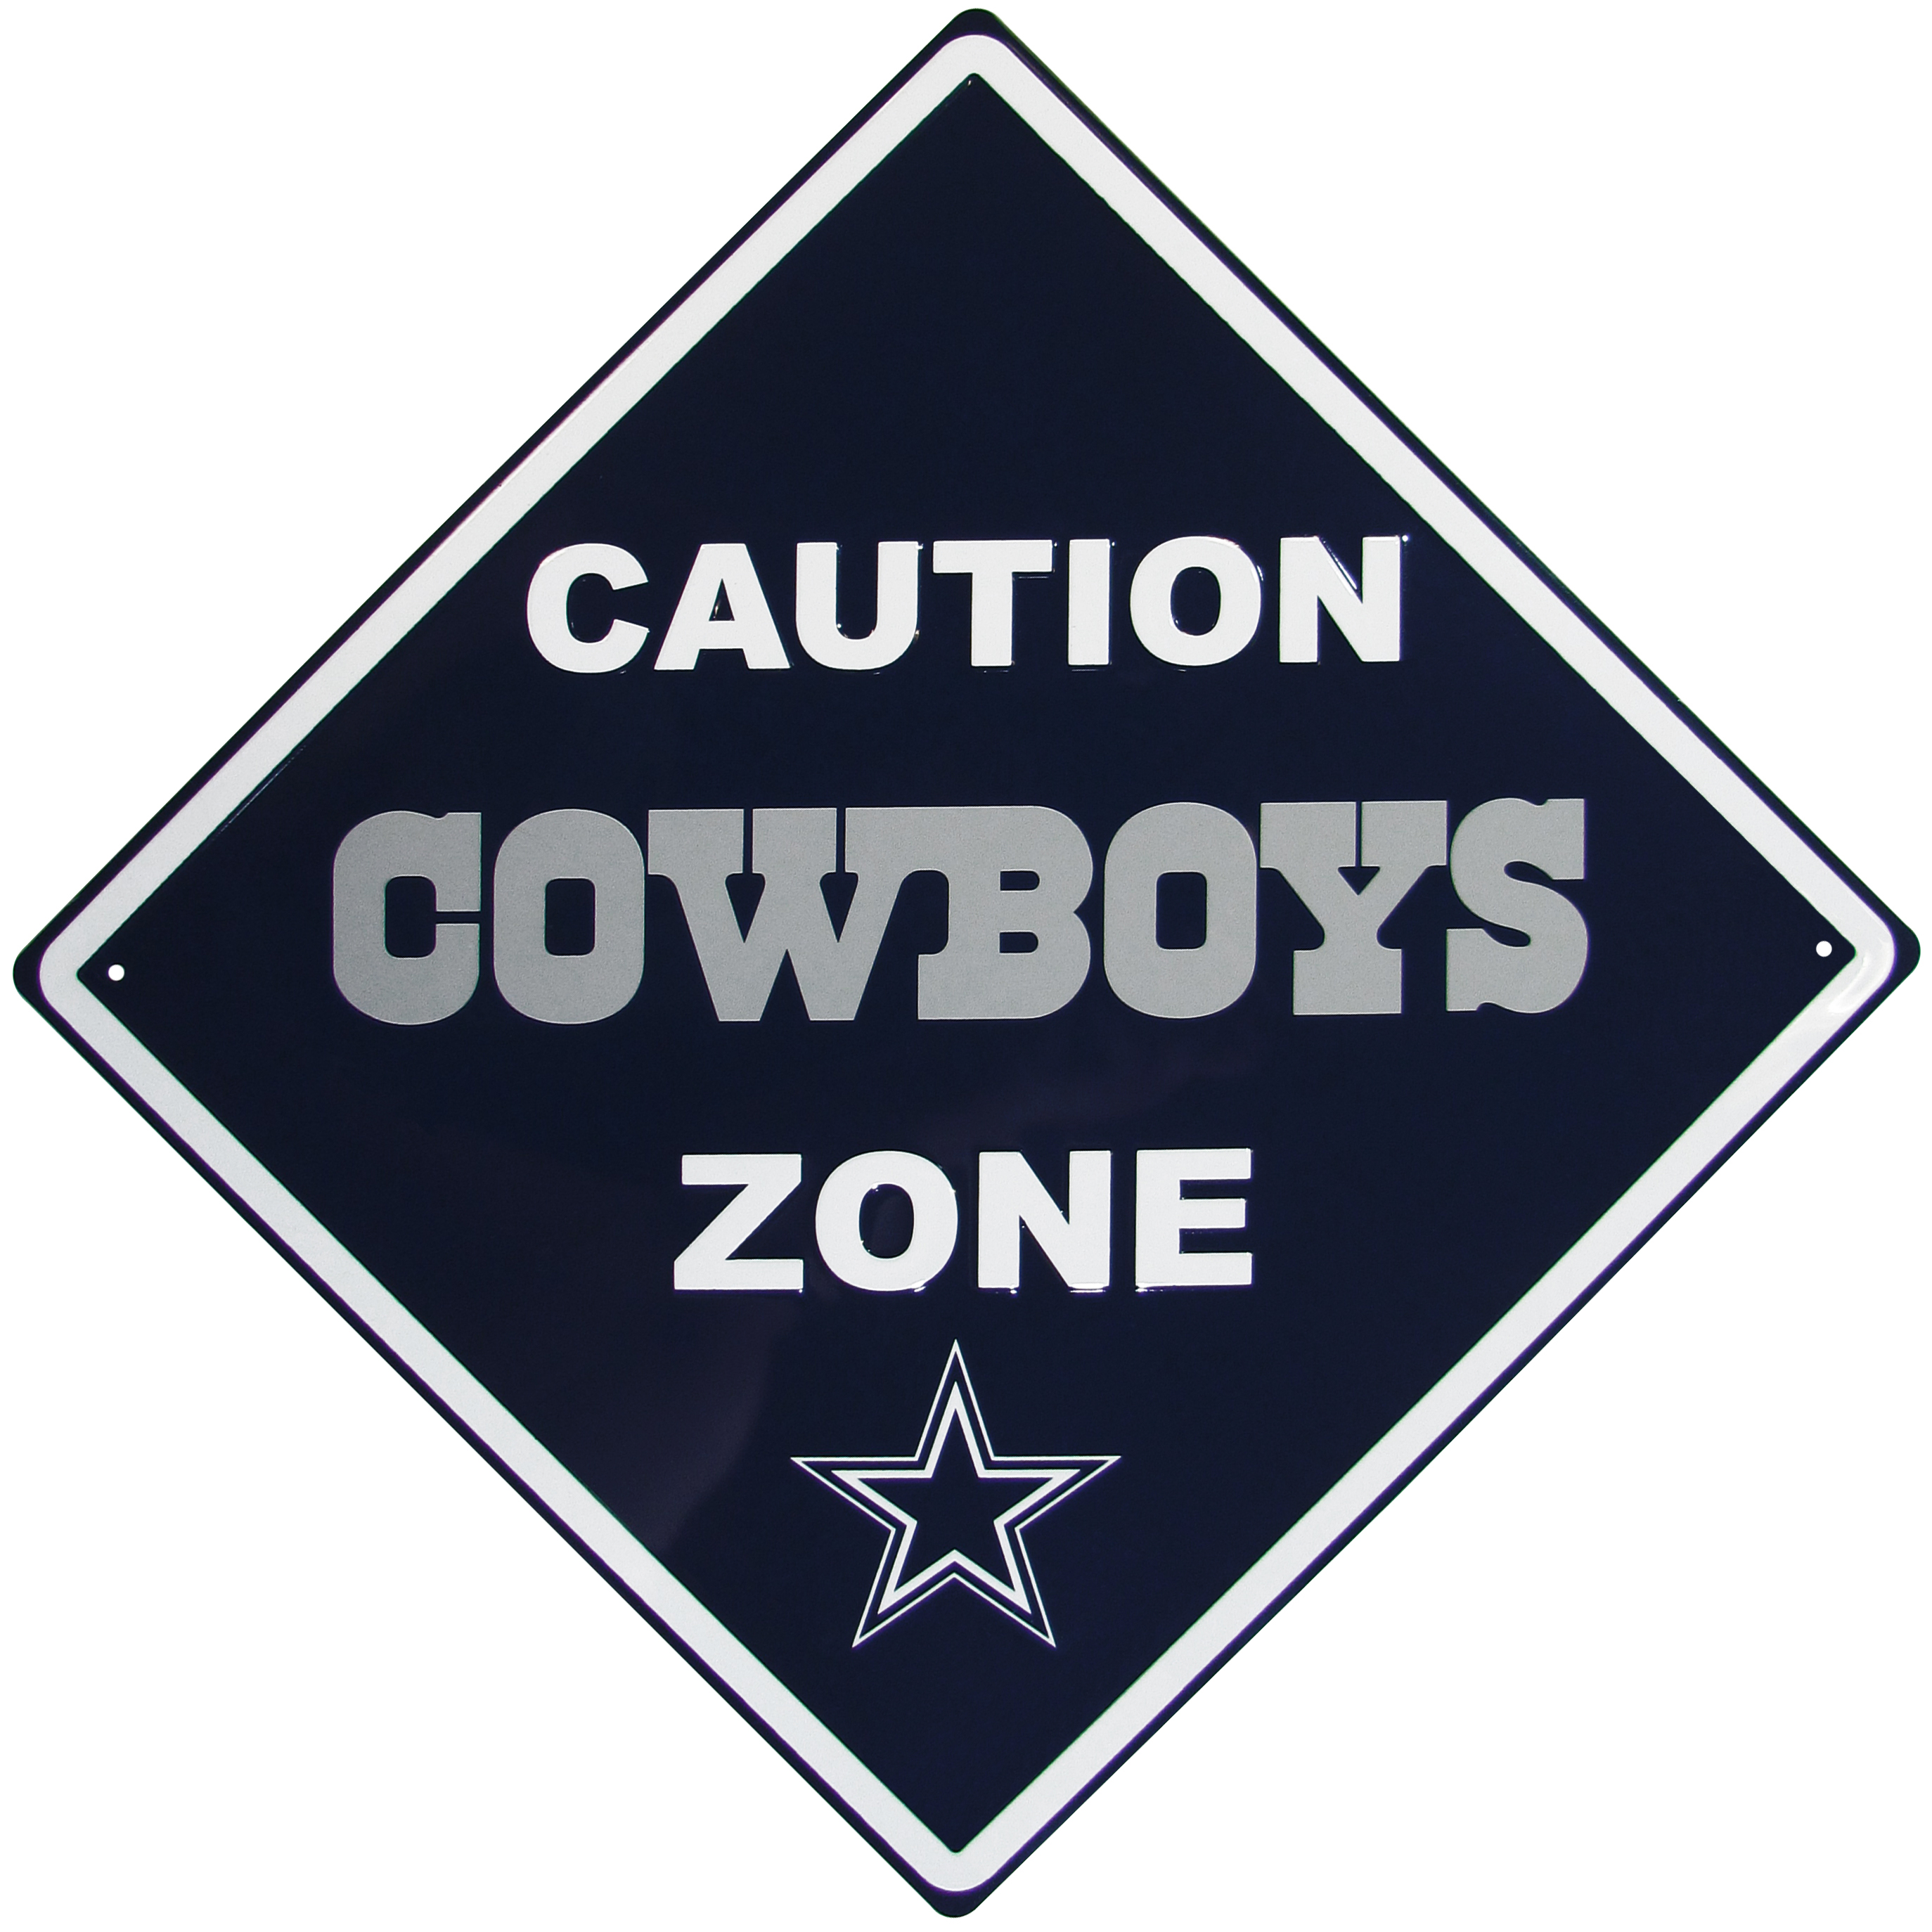 Dallas Cowboys Caution Wall Sign Plaque - Let everyone know that they are entering Dallas Cowboys territory! Our 14 inch caution wall plaques are a the perfect way to convert any room into a fan cave! The light-weight aluminum signs mount easily to any wall and are perfect for the home or office.